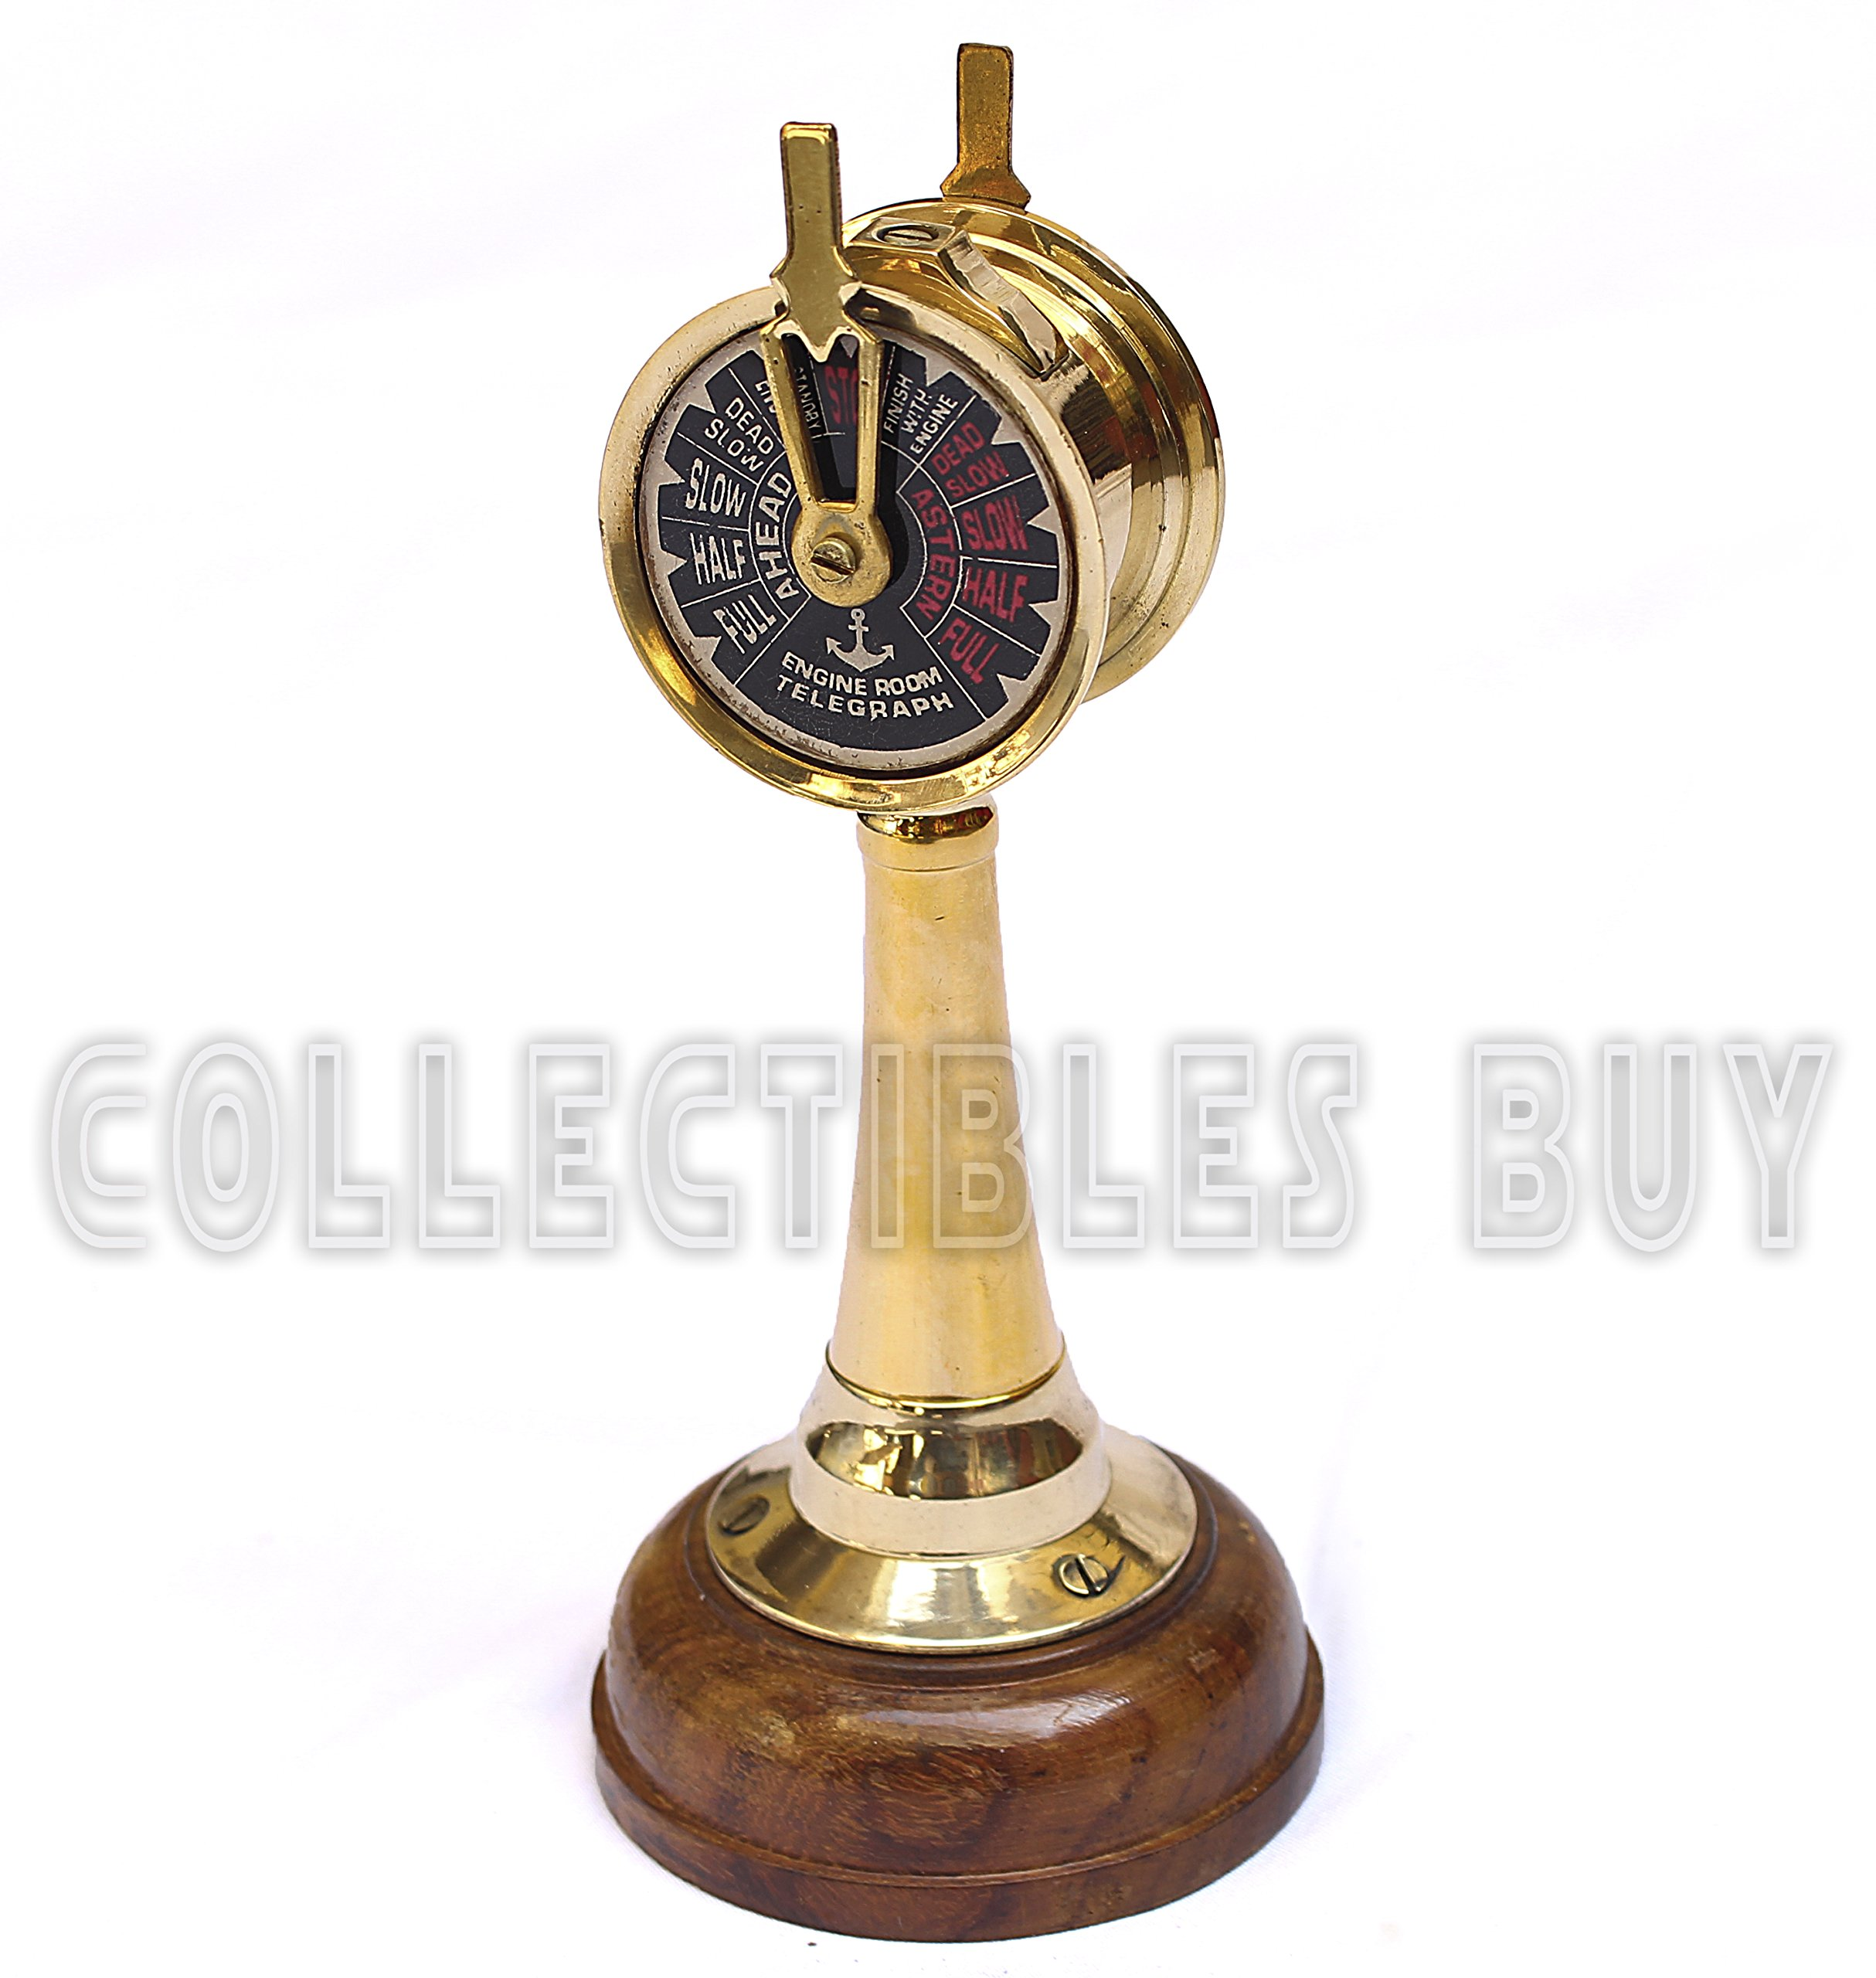 Royal Mini Nautical Brass Handmade Telegraph Vintage Maritime telescopes Collectible Item … (Wooden)